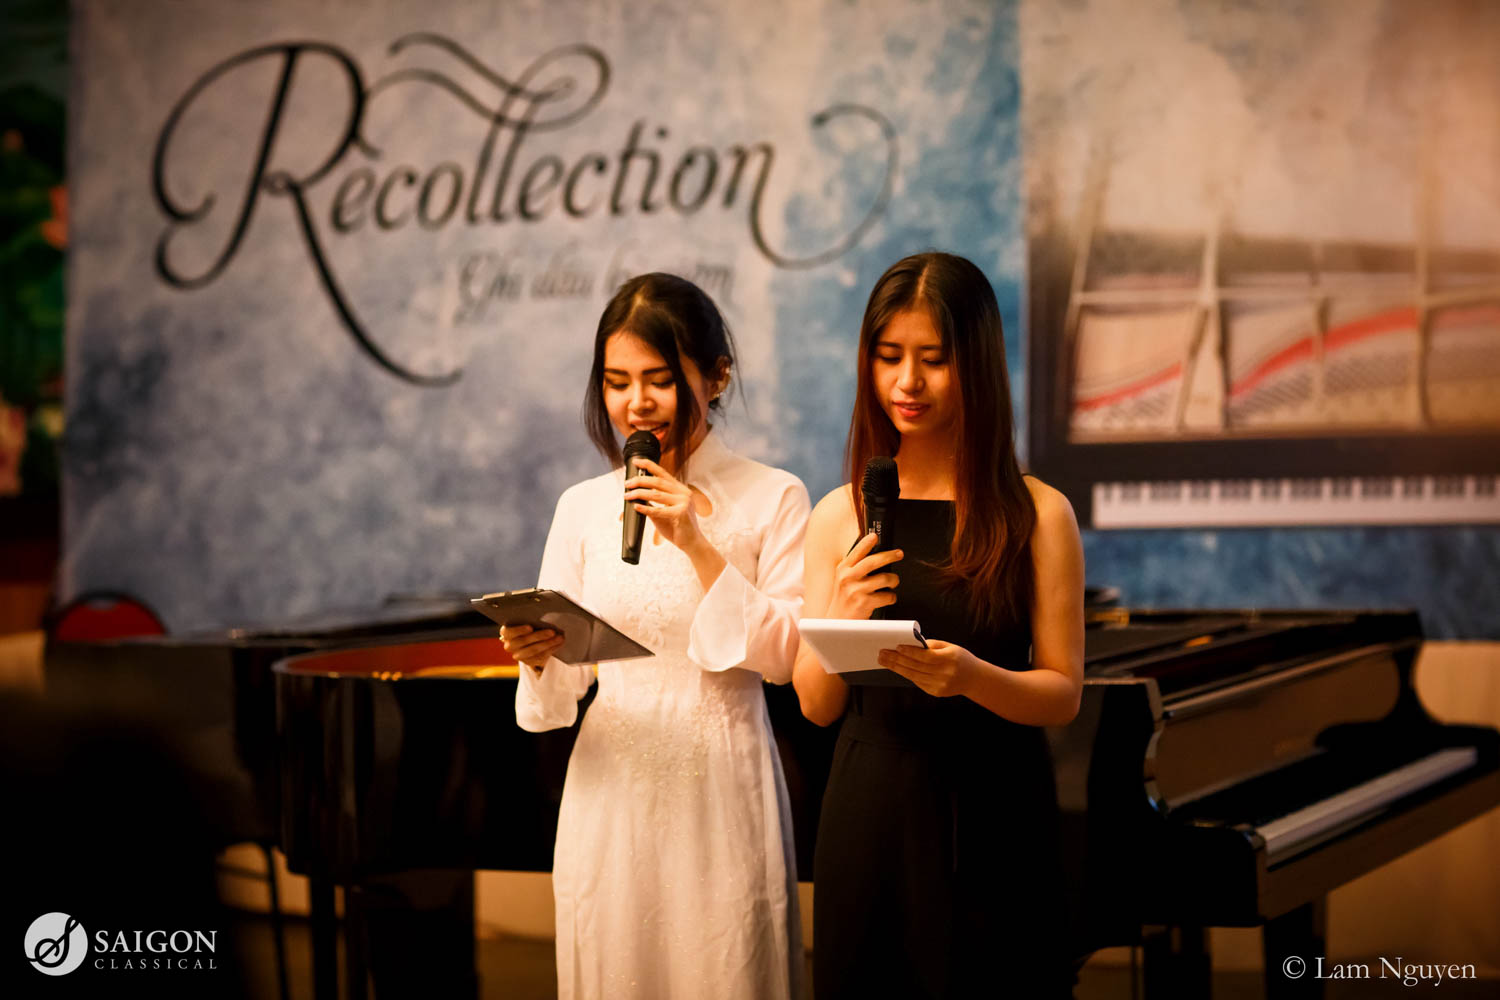 Recollection (4)